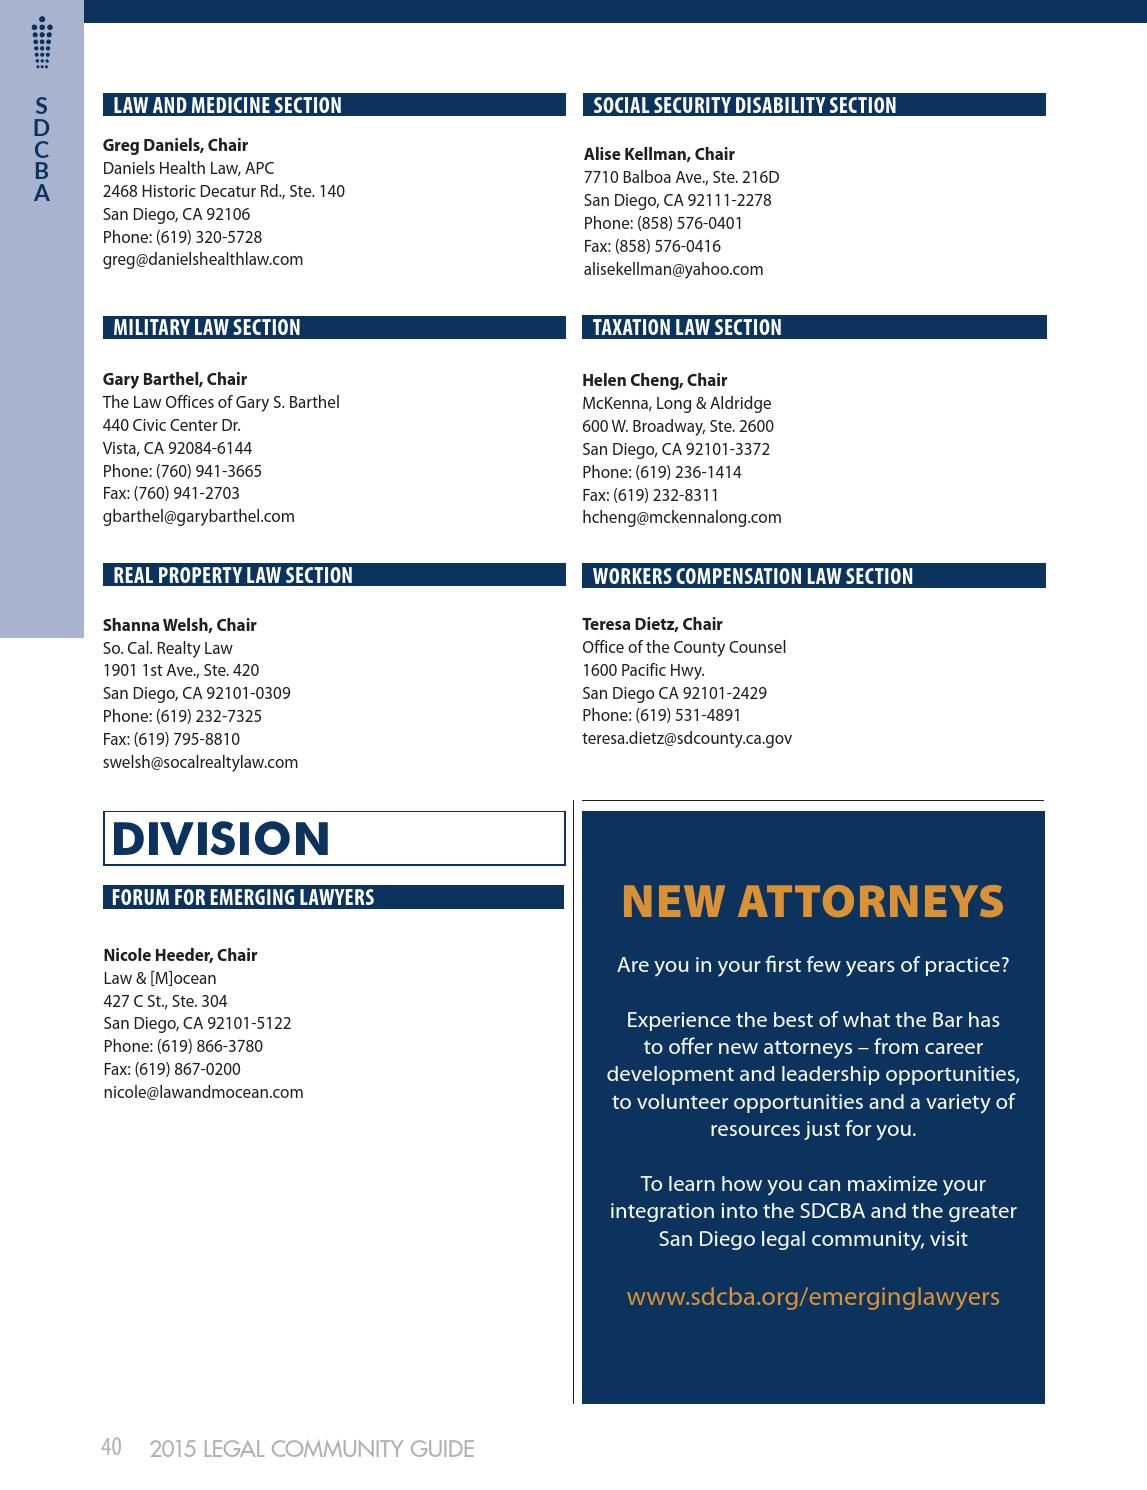 SDCBA Legal Community Guide 2015 by San Diego County Bar